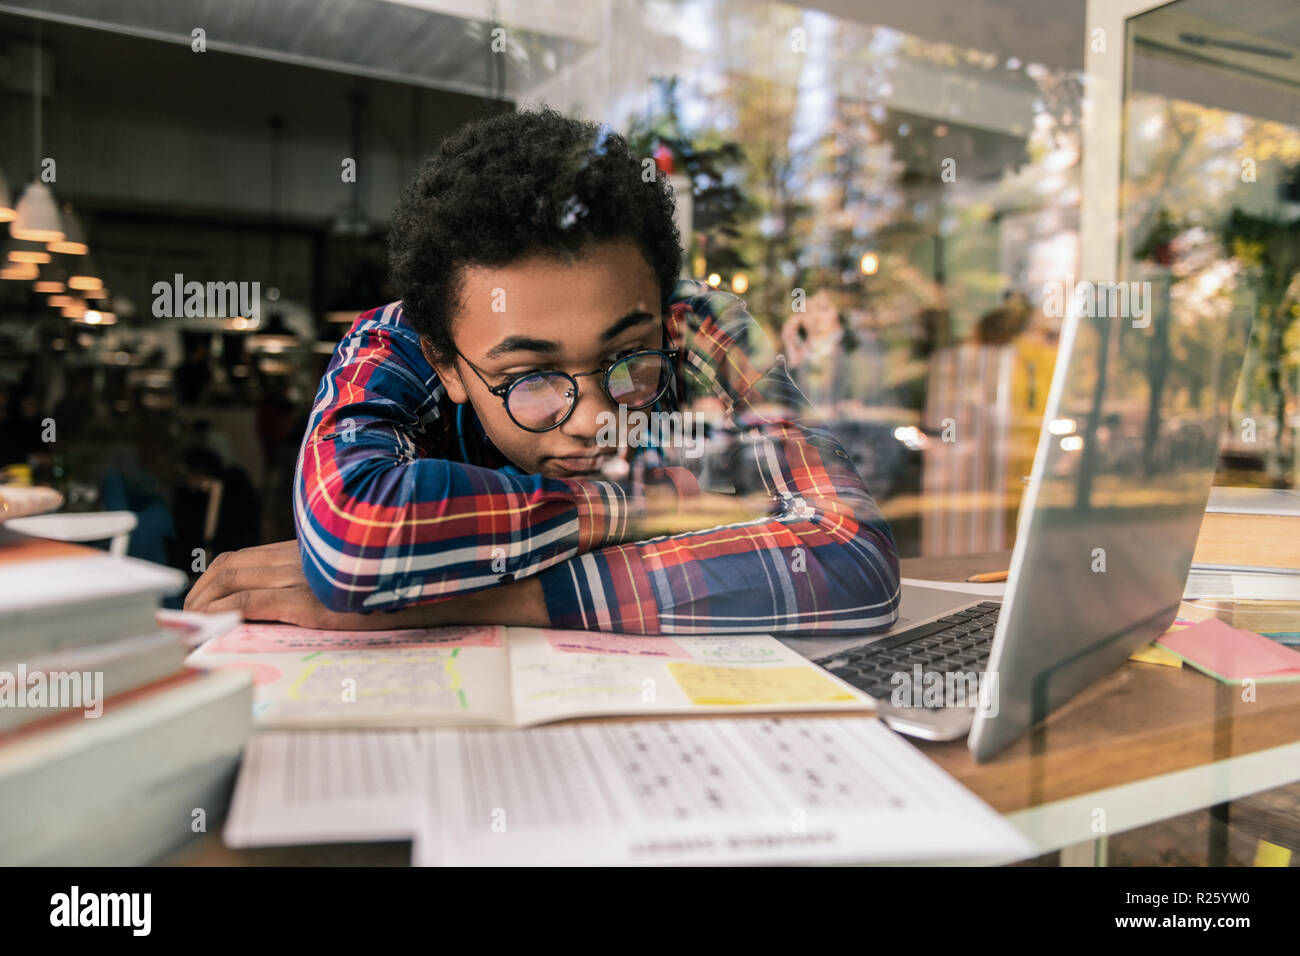 Sad unhappy student thinking about the exam - Stock Image